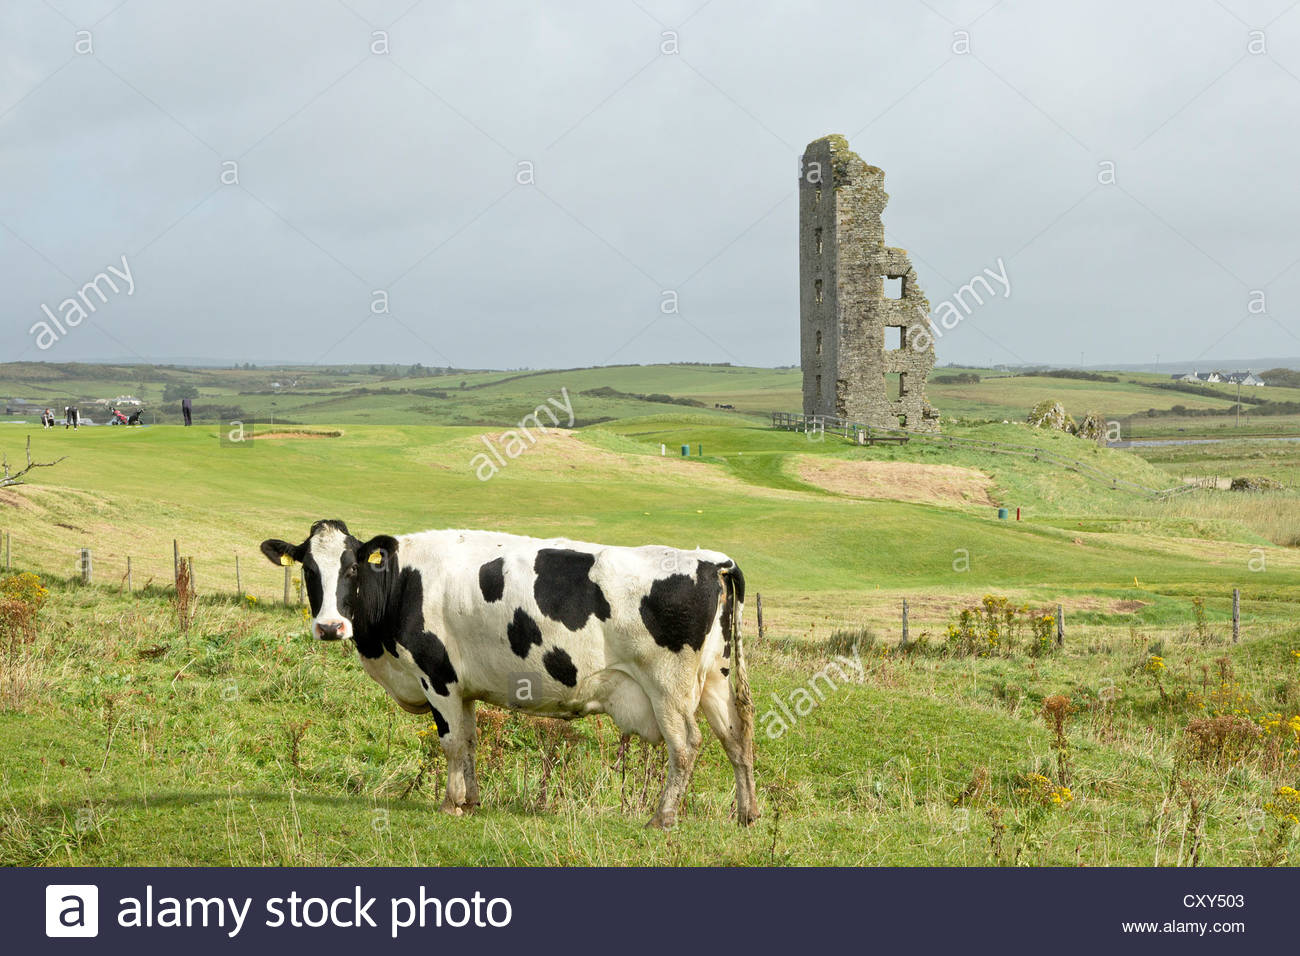 cow in front of ruins, Lahinch, Co. Clare, Ireland - Stock Image